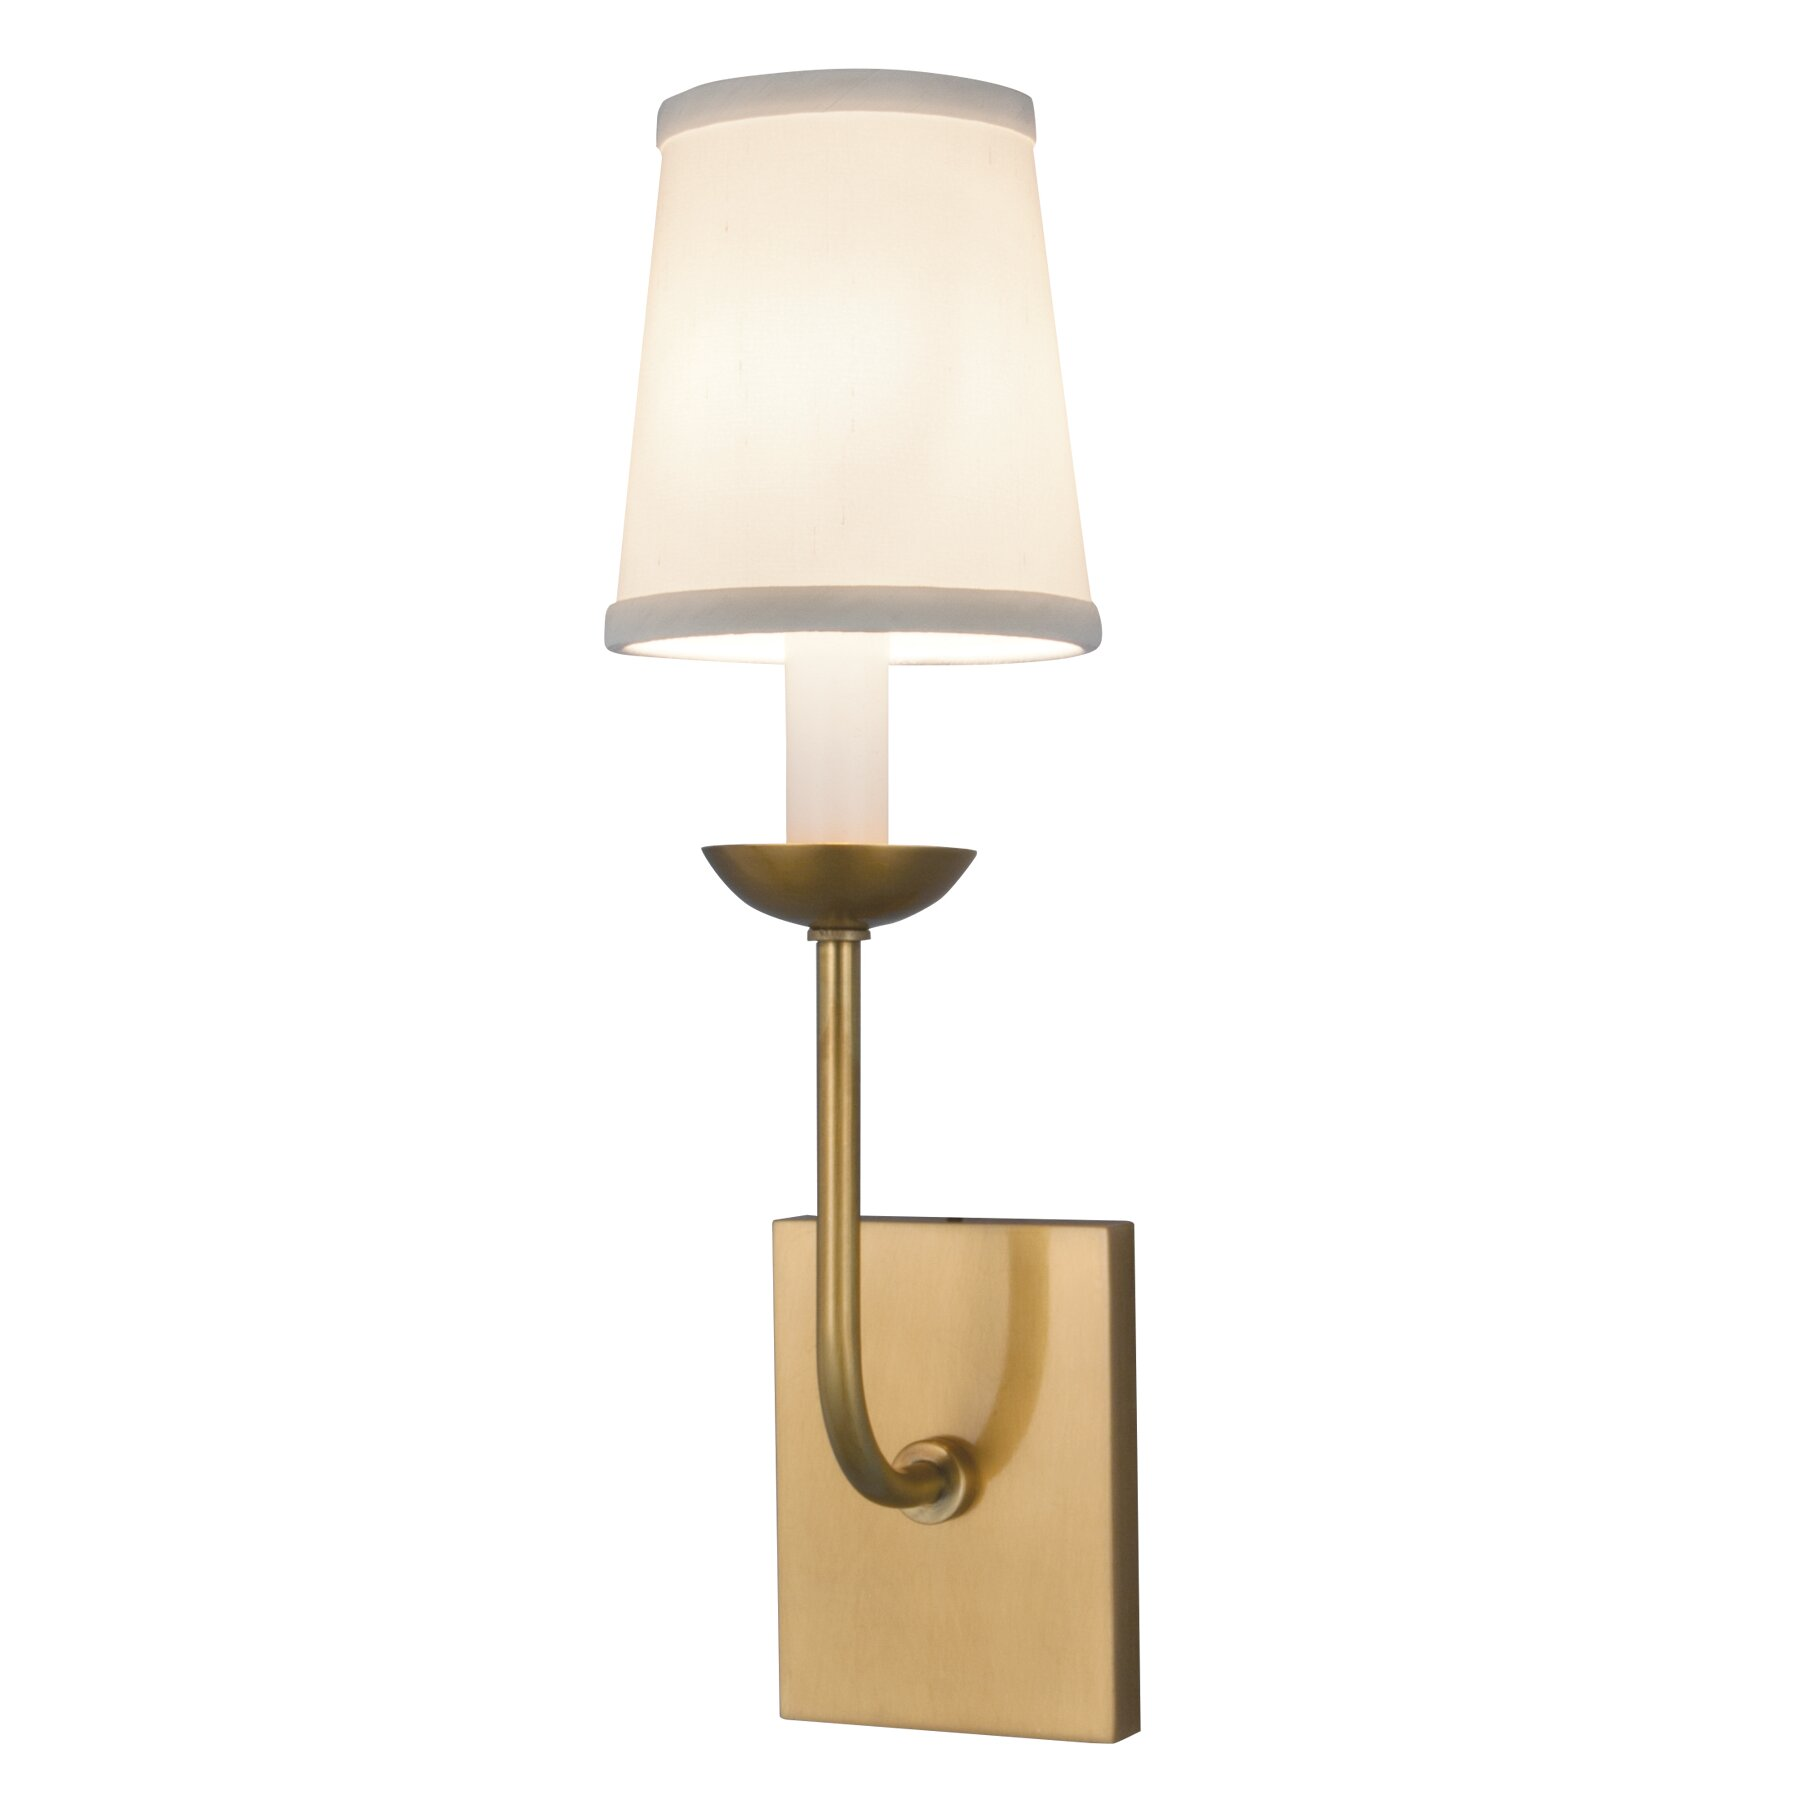 Norwell Lighting Circa 1 Light Wall Sconce & Reviews Wayfair